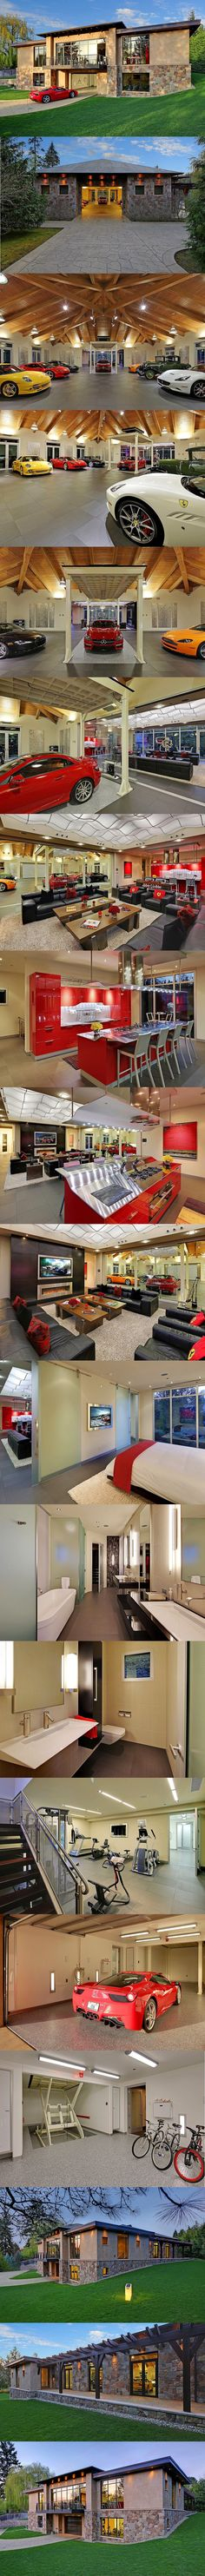 http://yrt.bigcartel.com Incredible auto-enthusiast mansion with 16 car garage and built-in car elevator. Ferrari 458, Audi R8, Porsche 911 Turbo, Aston Martin V8 Vantage, Mercedes AMG. Bellevue, Washington